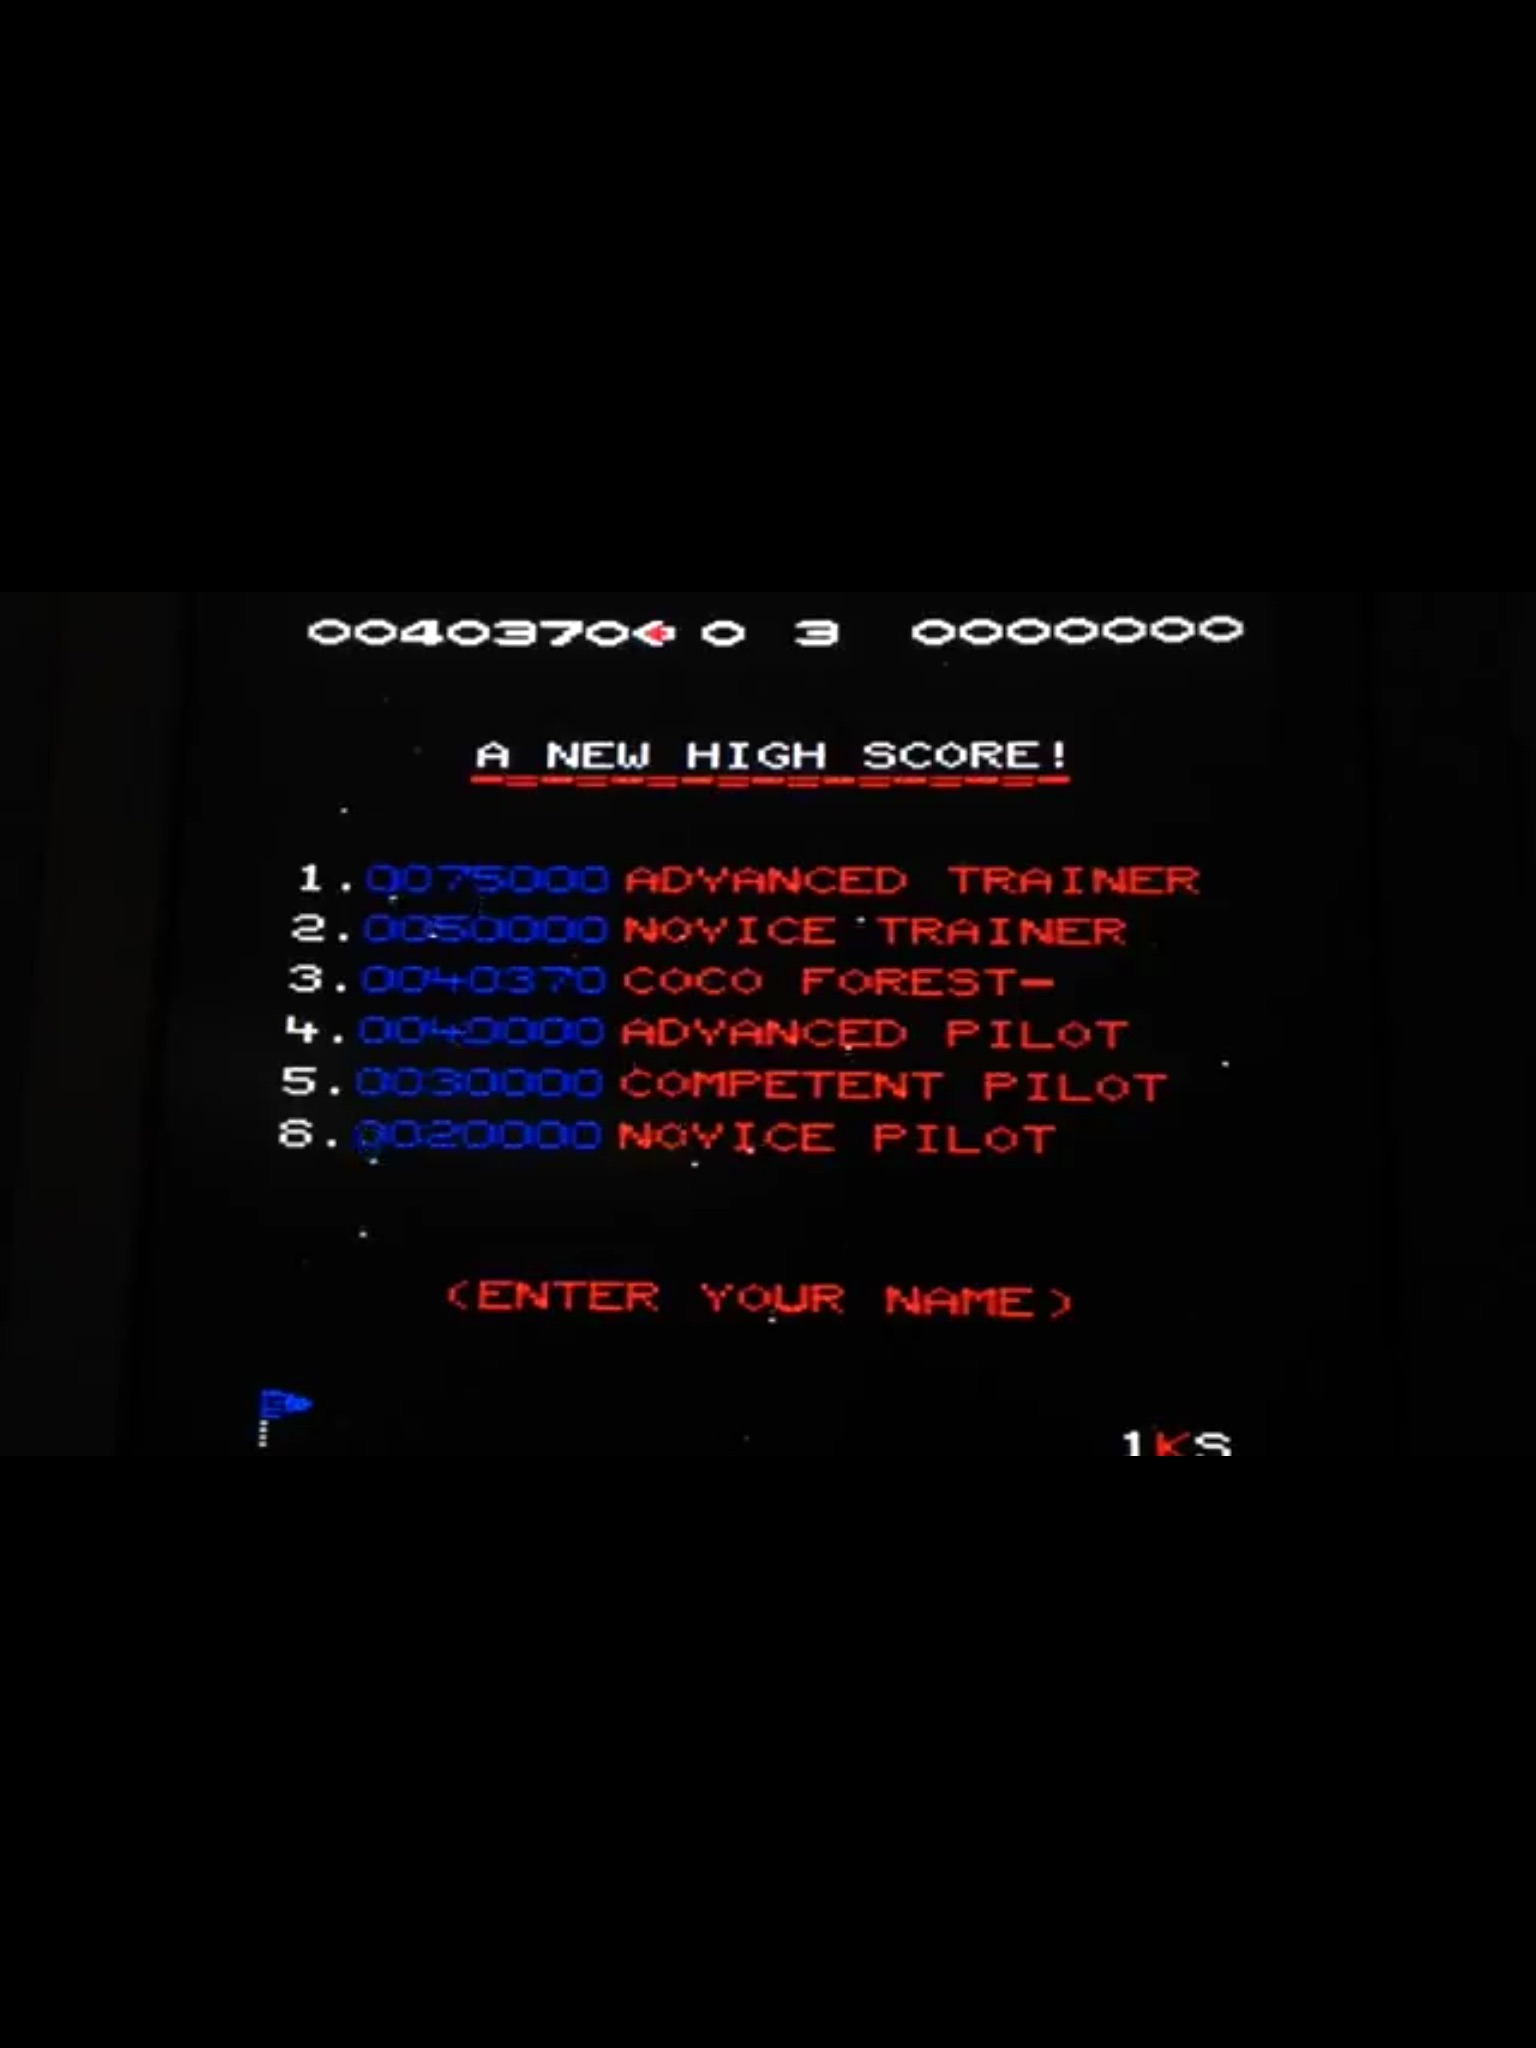 CoCoForest: Galaforce 2 (BBC Micro) 40,370 points on 2015-04-16 07:03:36